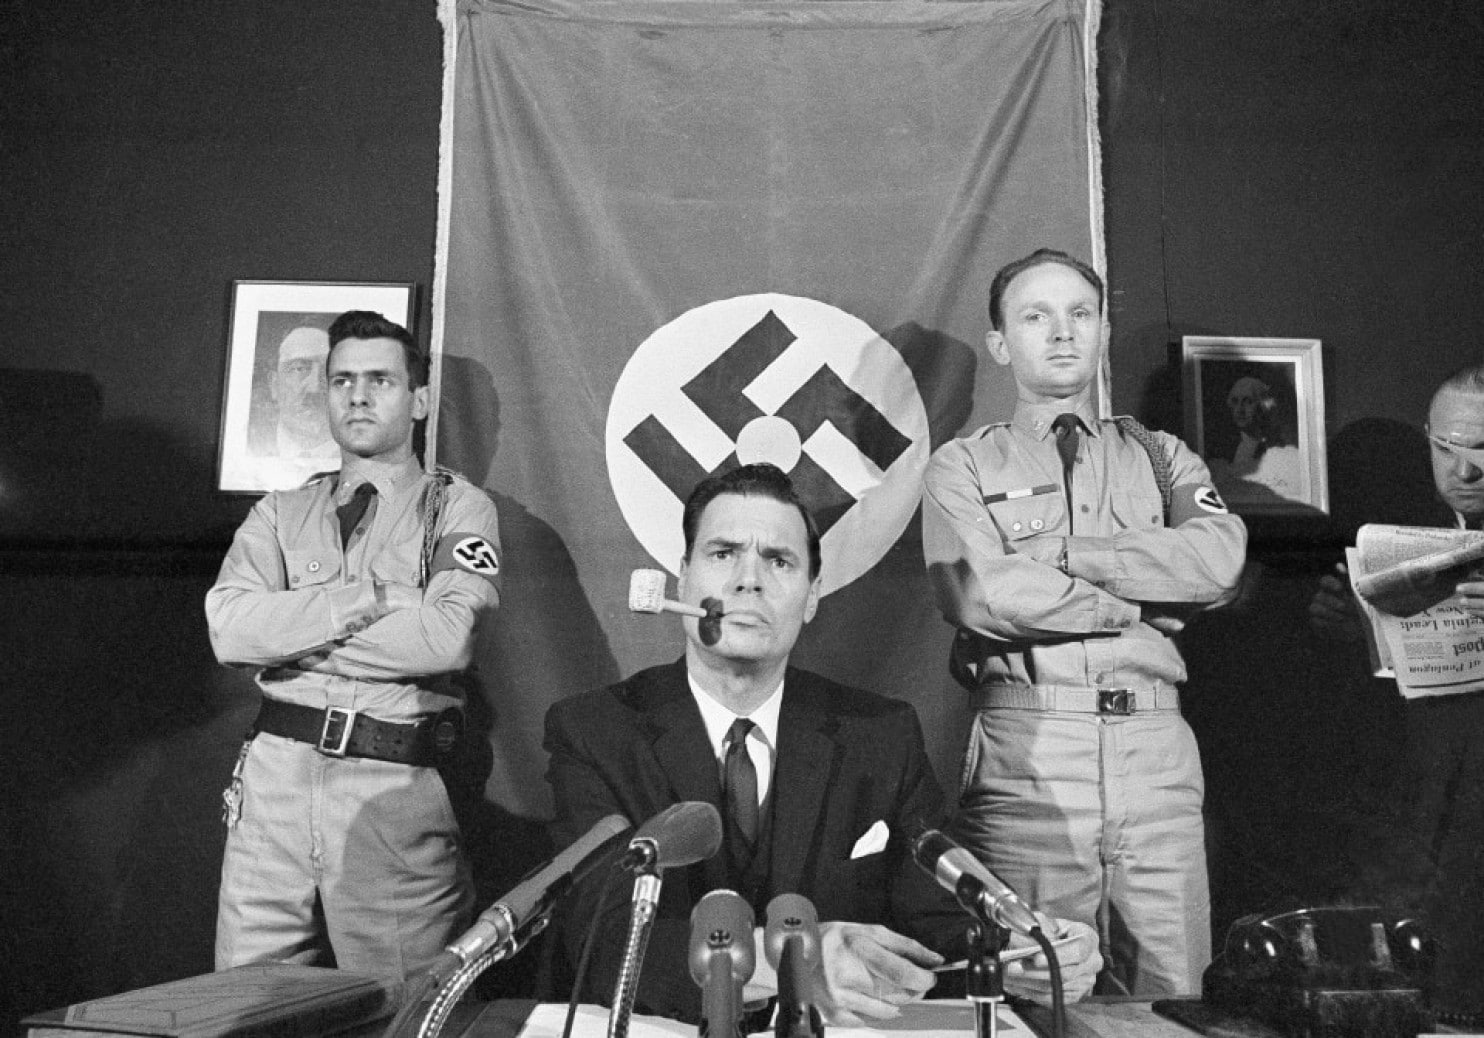 George Rockwell: The Original American Nazi